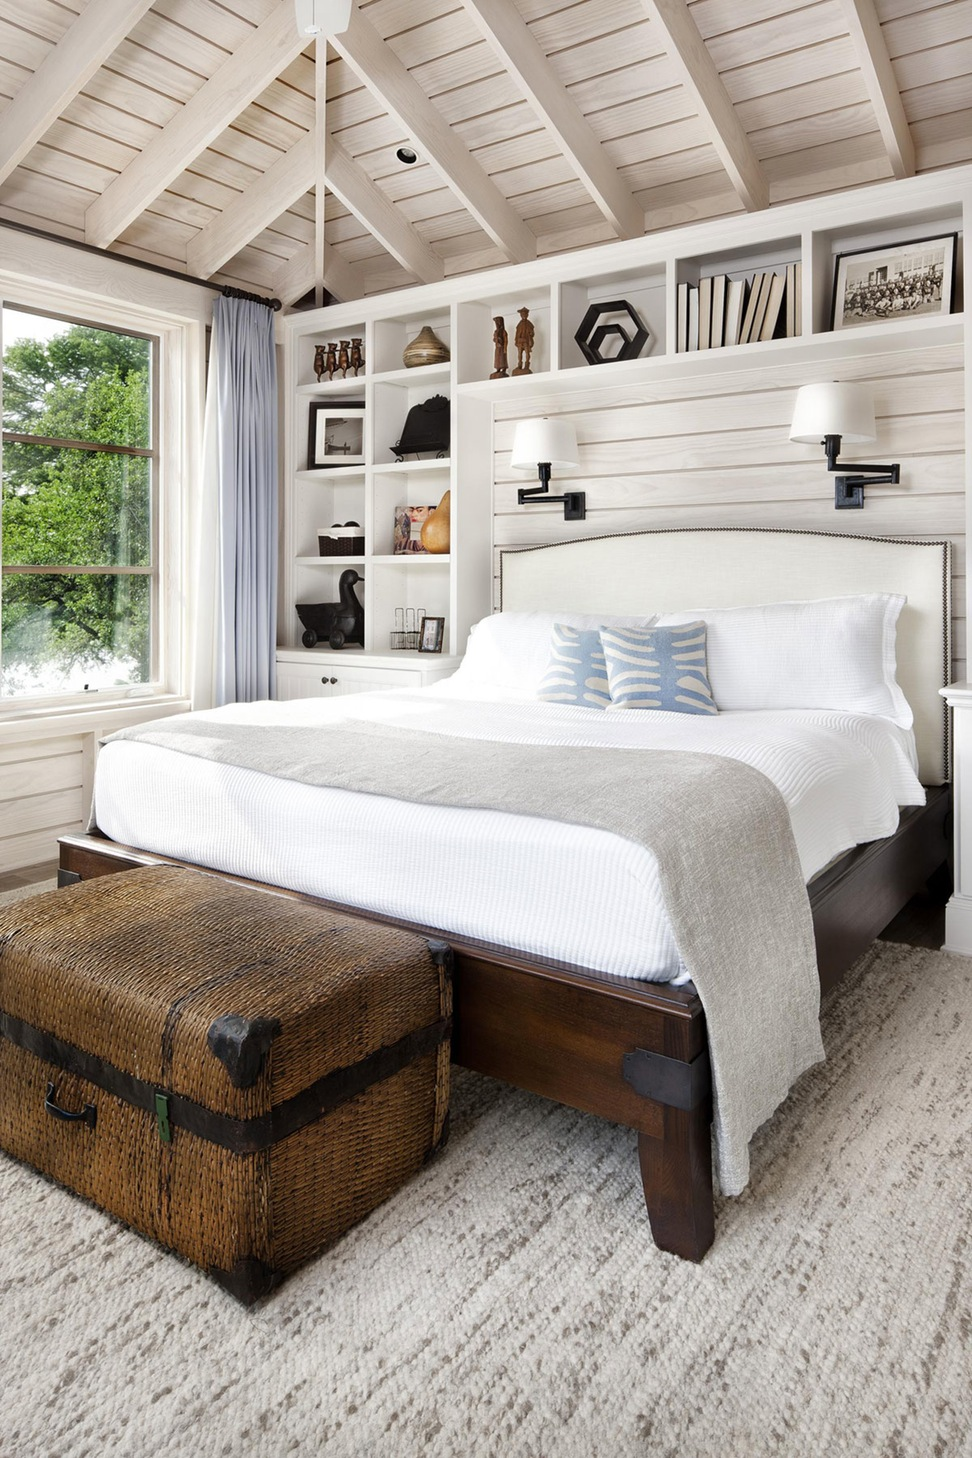 cozy bedroom Cozy Bedroom Décor in Farmhouse Style beautiful white brown wood glass simple design interiors and homes bedroom mattres bed cushion windows display cabinet sui country interiors design interior design minimali